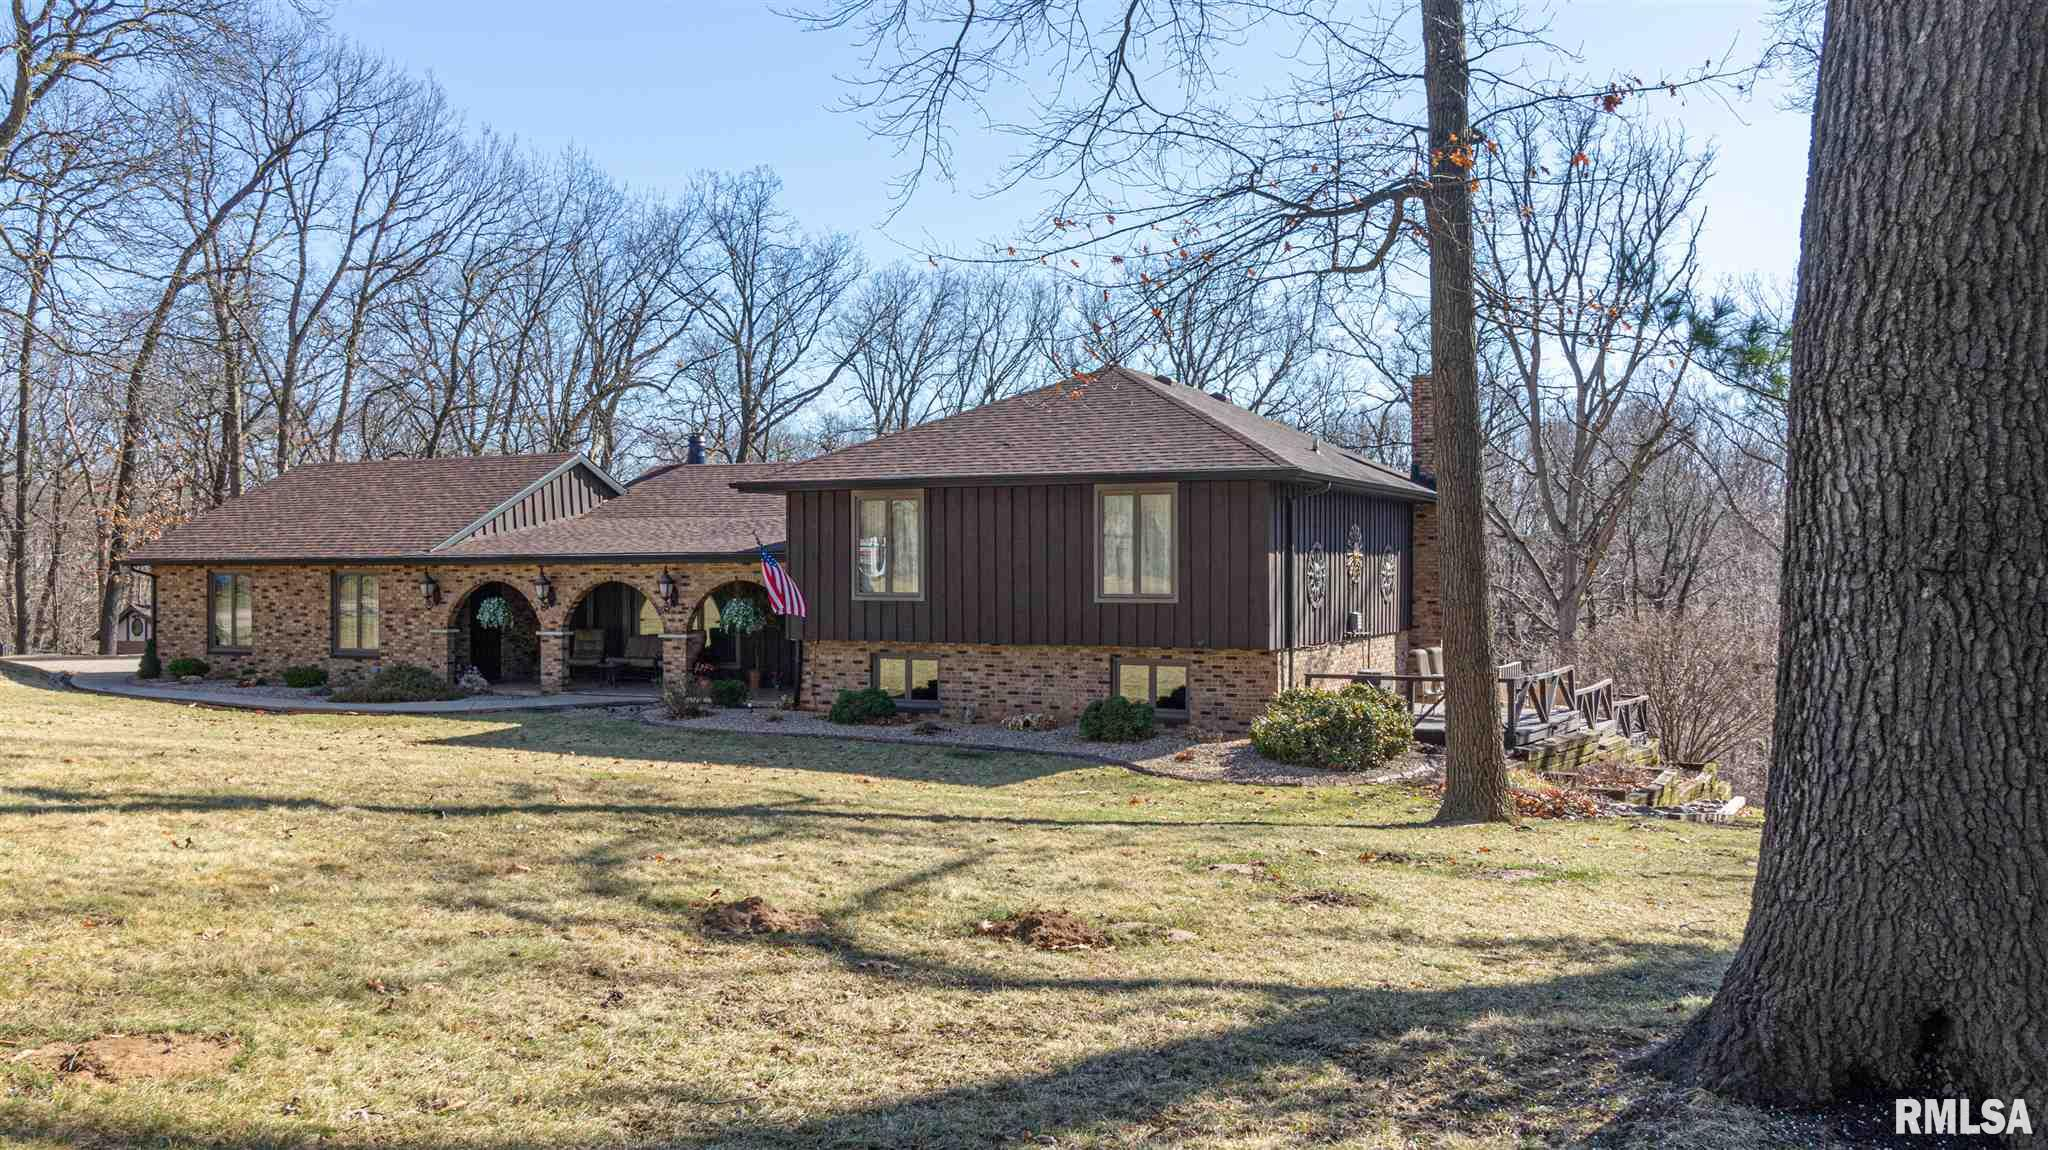 1199 N OLDE FARM Property Photo - East Peoria, IL real estate listing